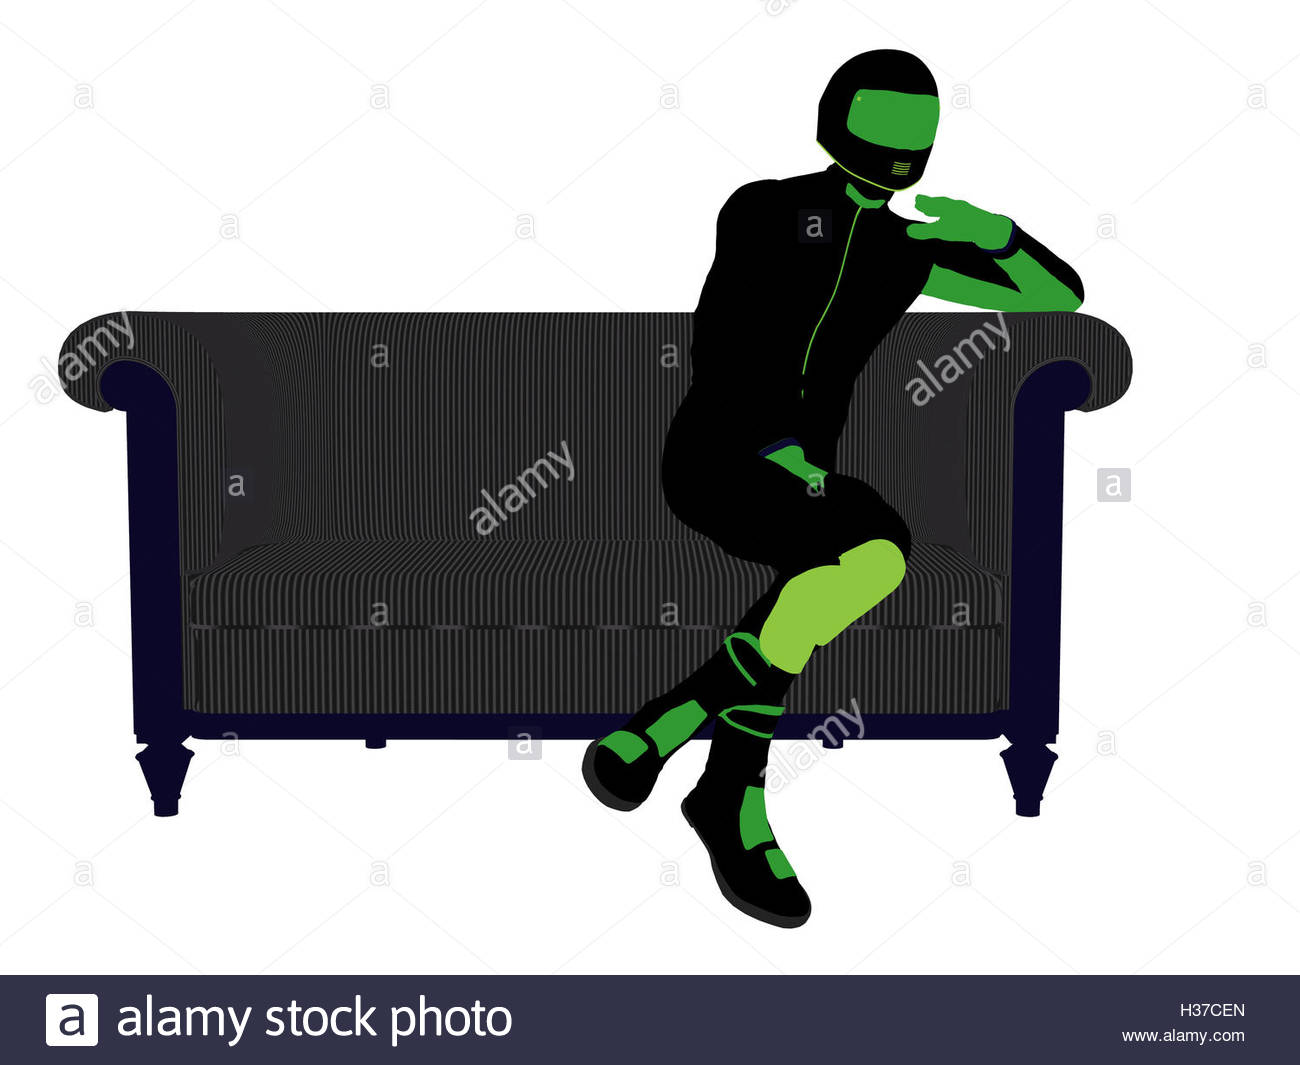 1300x1065 Male Motorcycle Rider Sitting On A Sofa Silhouette Stock Photo